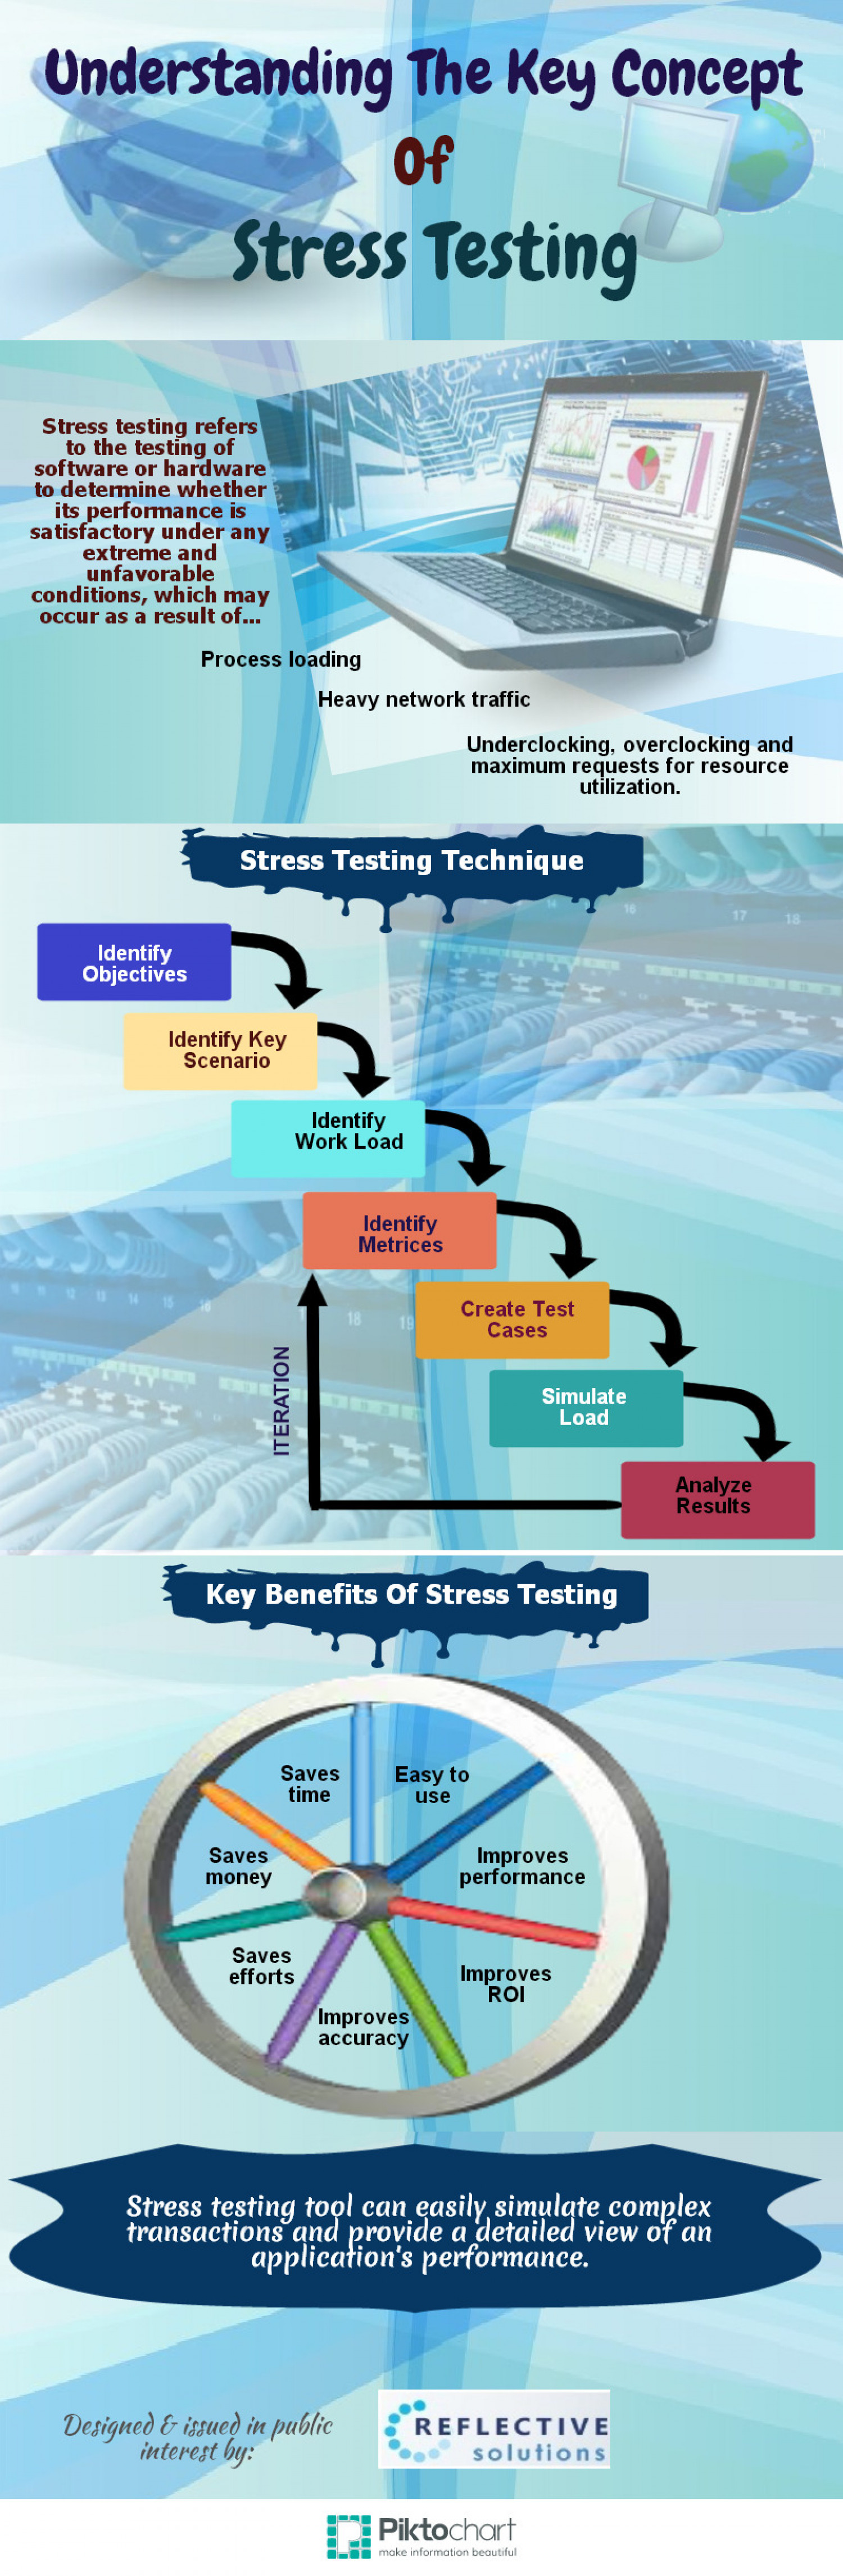 Understanding the Key Concept of Stress Testing Infographic